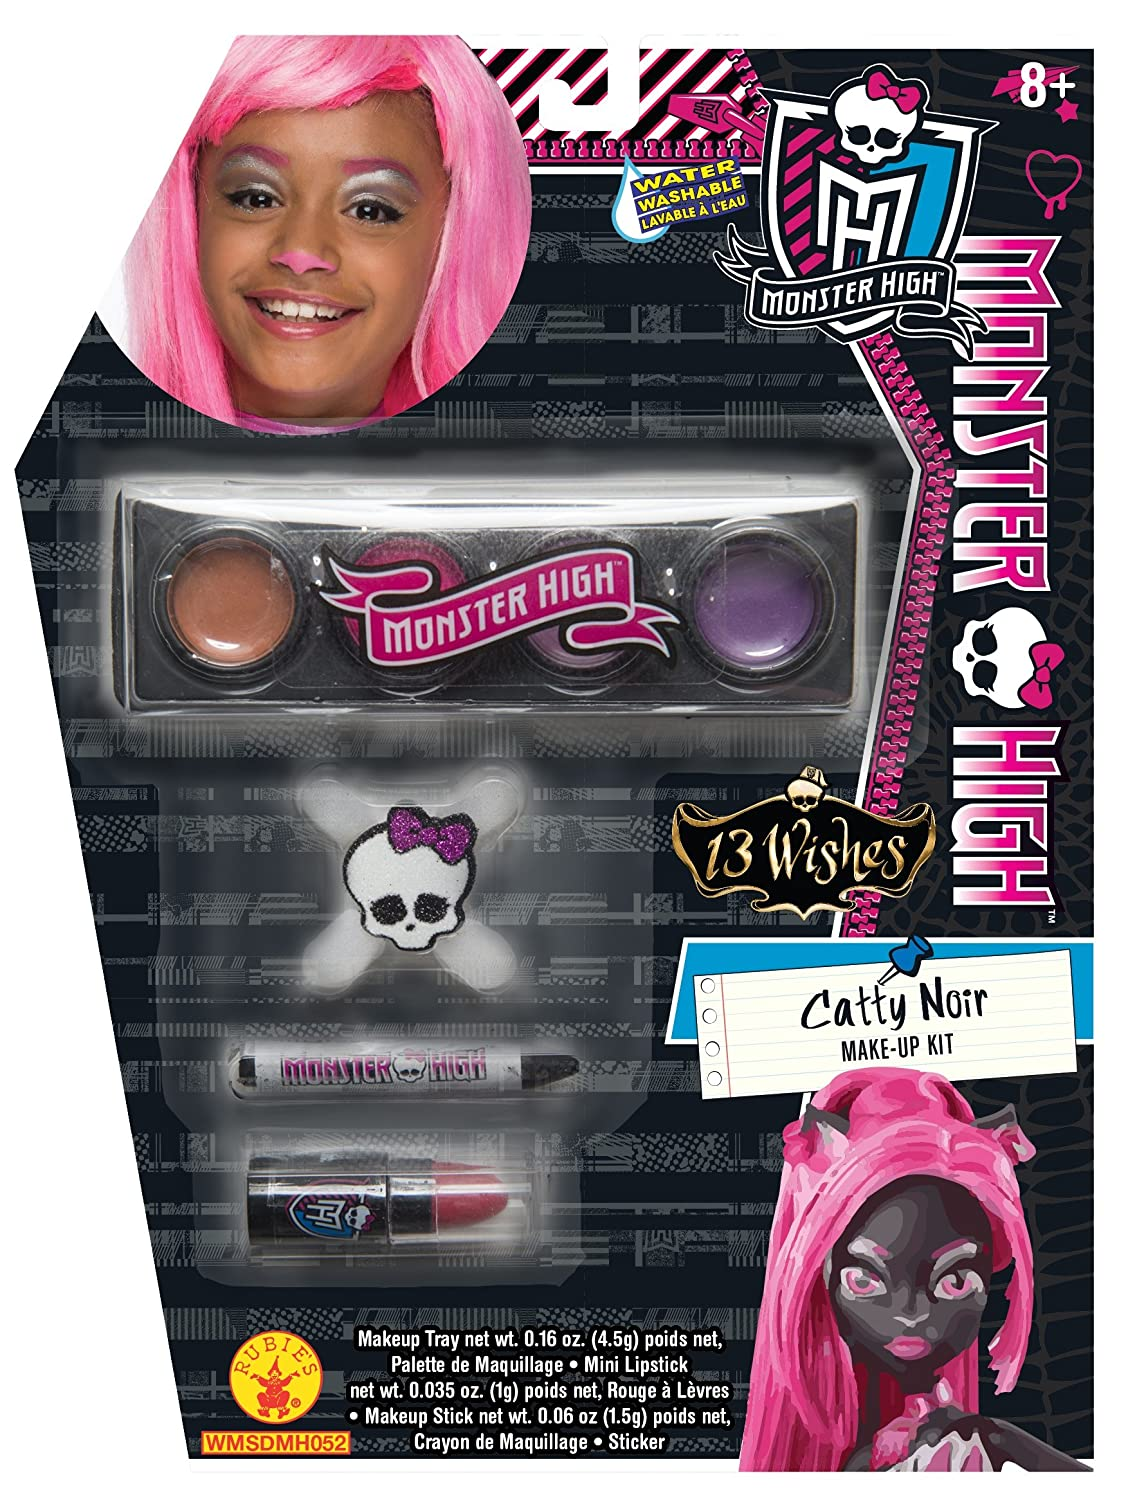 Amazon.com: Rubies Monster High 13 Wishes Catty Noir Make-Up Kit ...